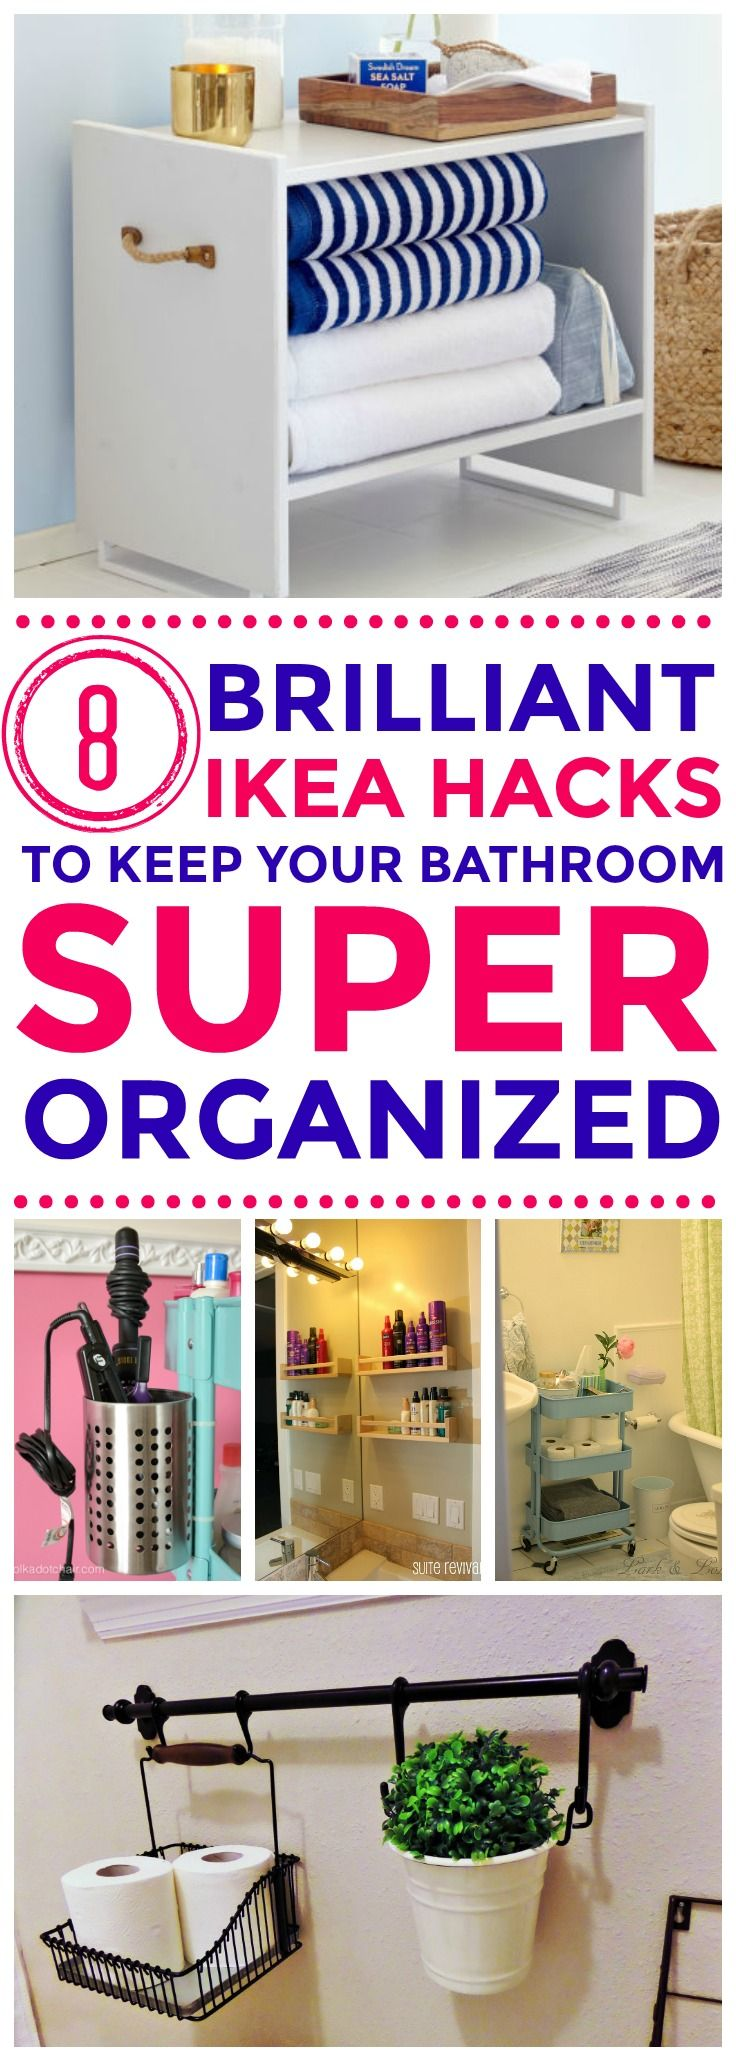 These Bathroom Organization hacks using Ikea products are great for small spaces!! I'm so happy I found these good ideas tha will declutter EVERYTHING in my bathroom!l!! Definitely pinning!